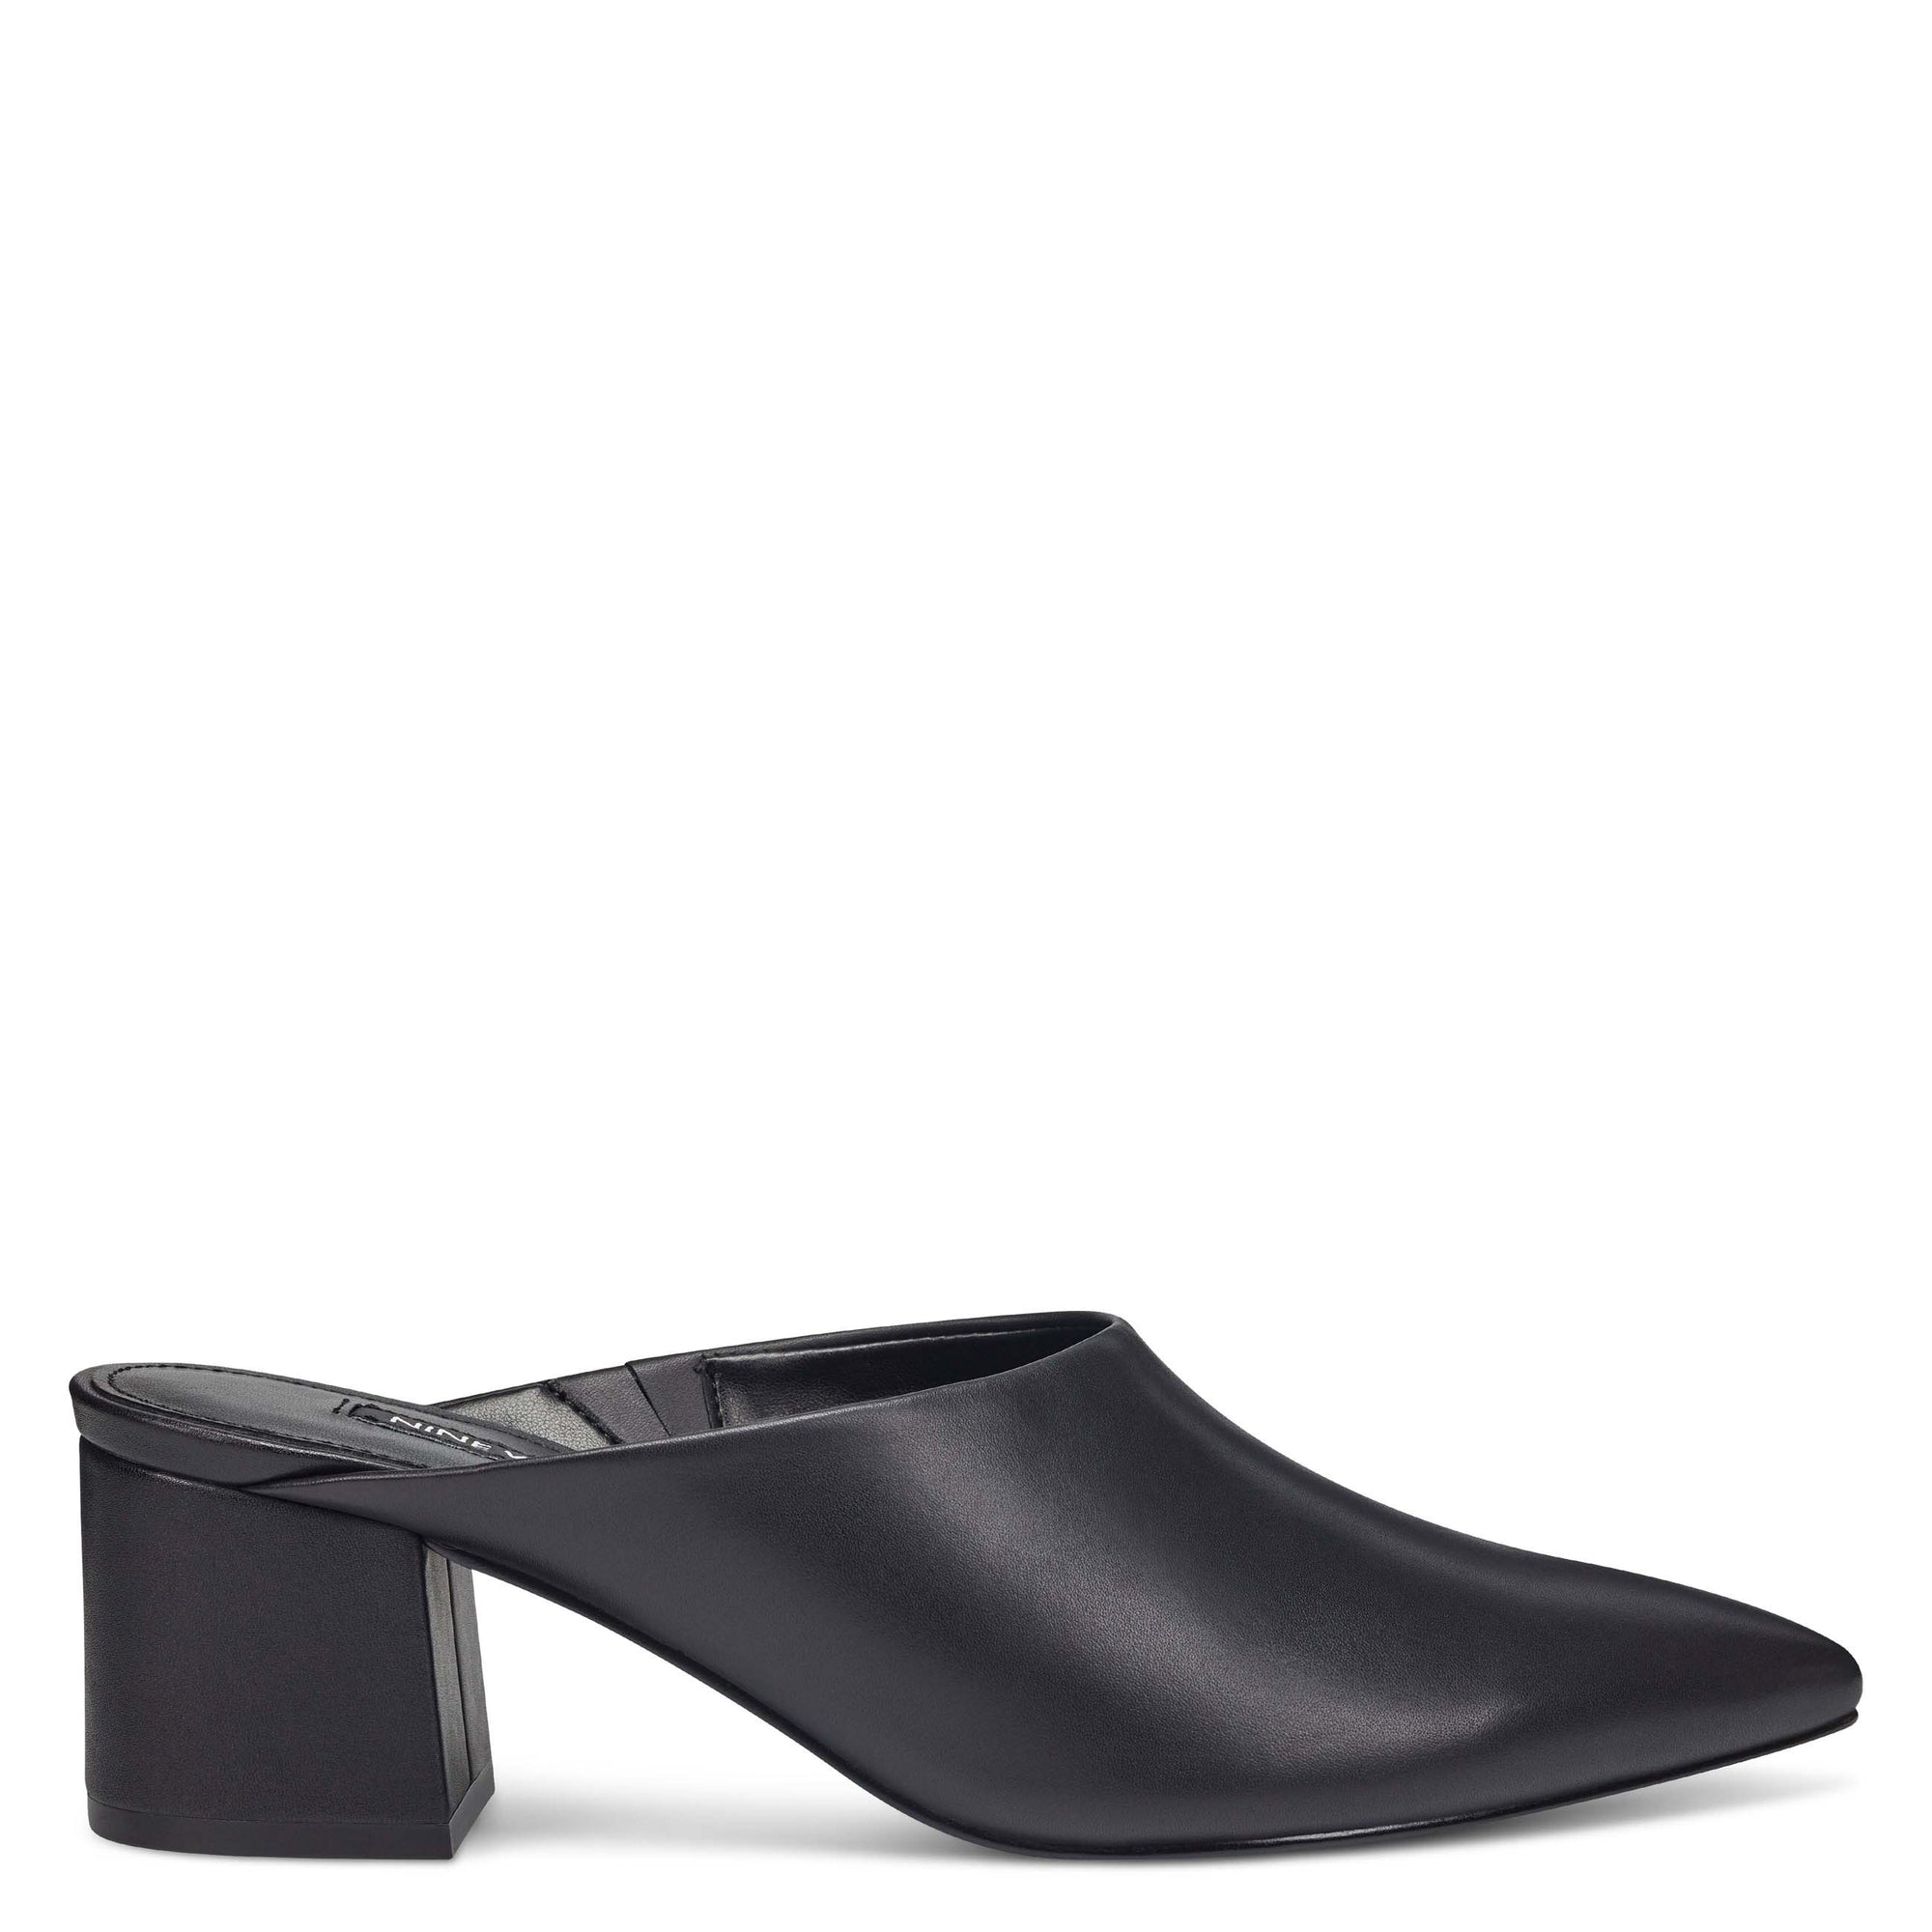 Clair Dress Mules